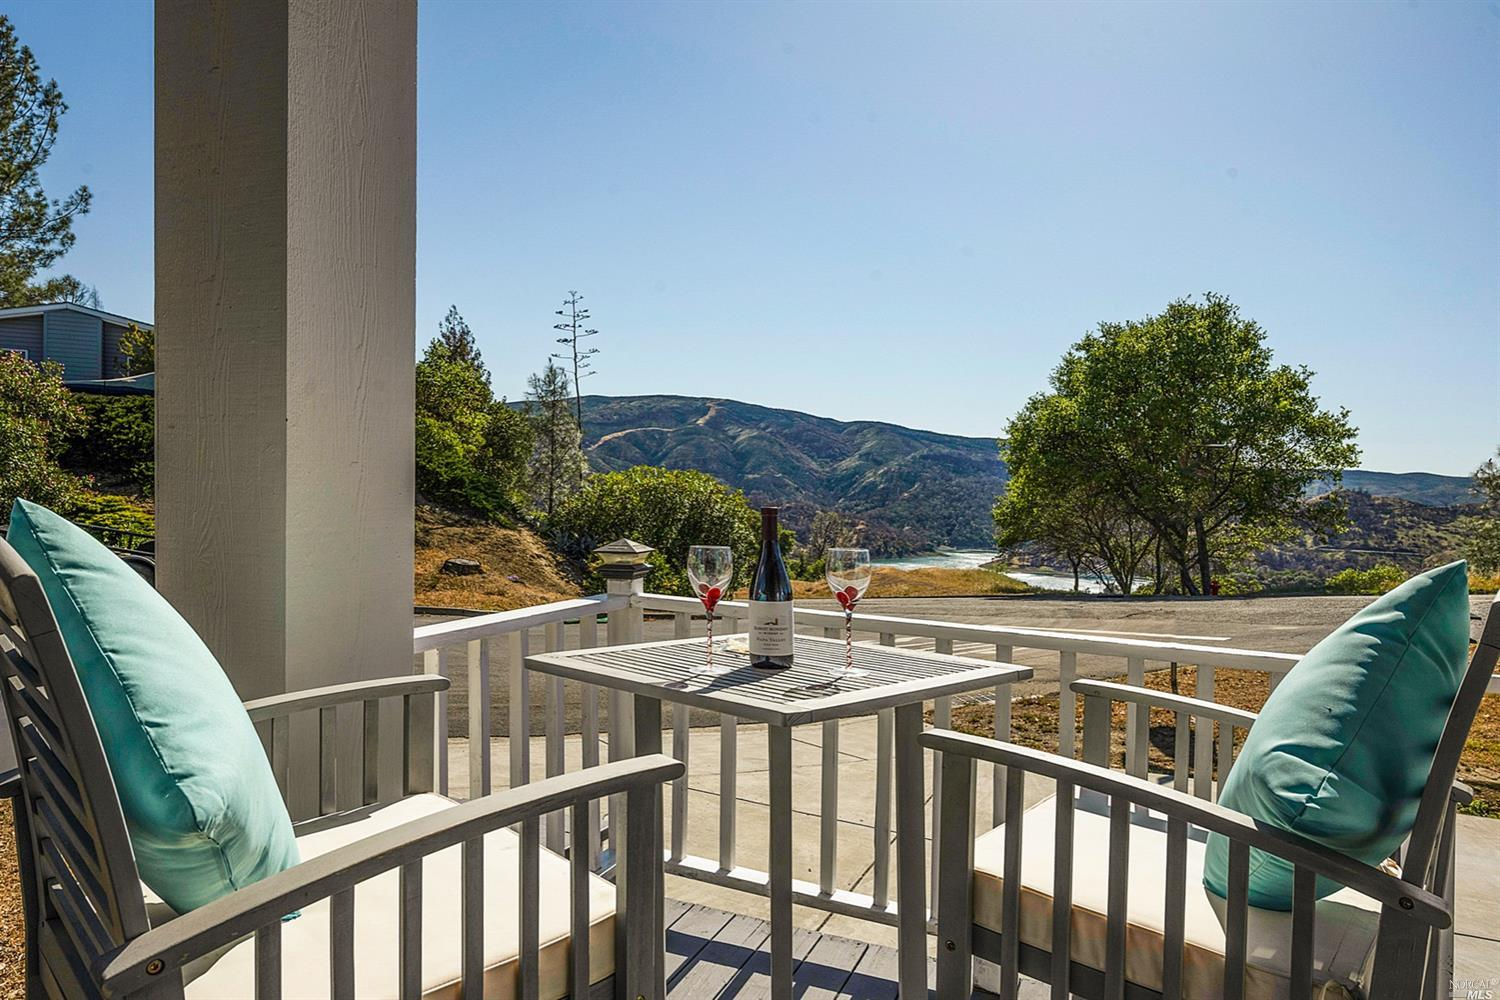 Lakeview TURN-KEY home in desirable Lake Berryessa. Just 1 minute to Steele Park campground and boat